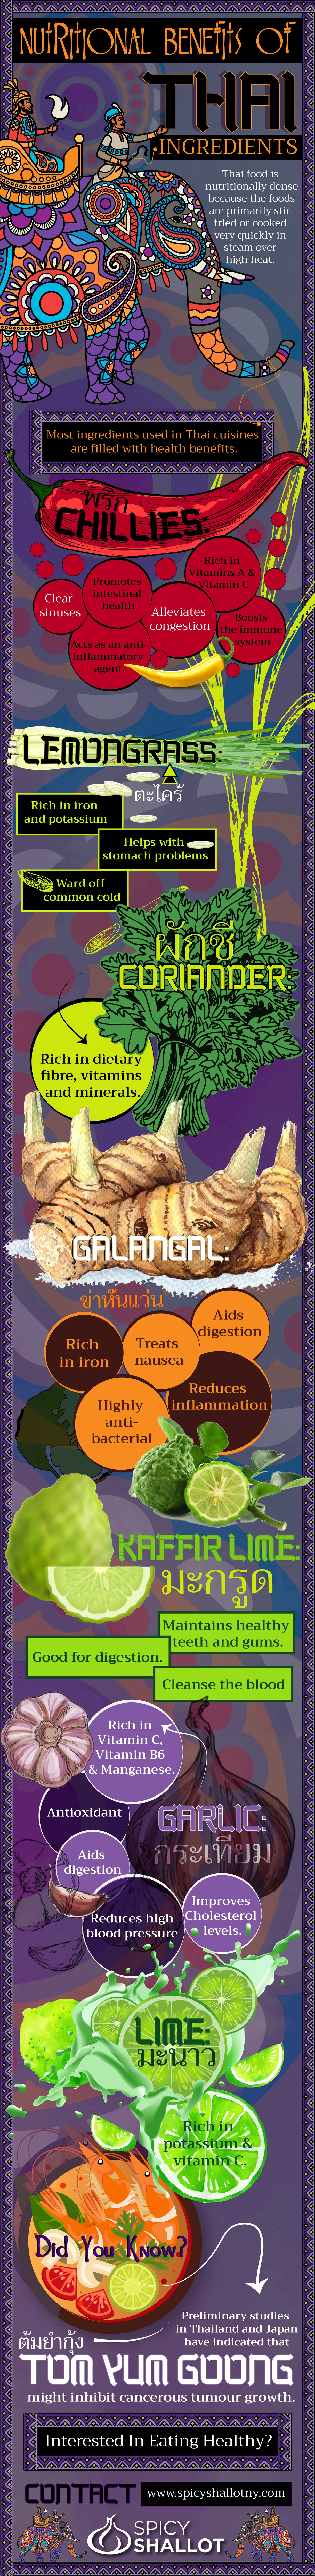 Image showing nutritional benefits of thai food